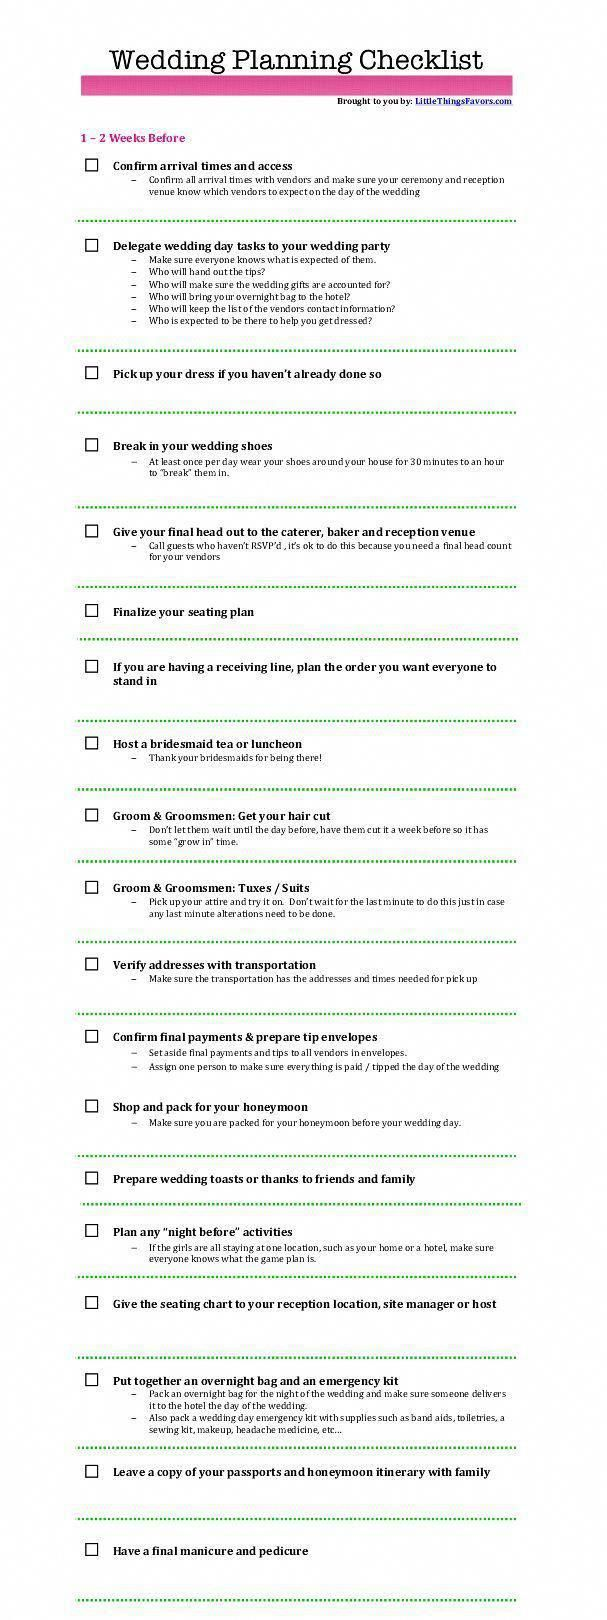 free printable wedding planning checklists for 12